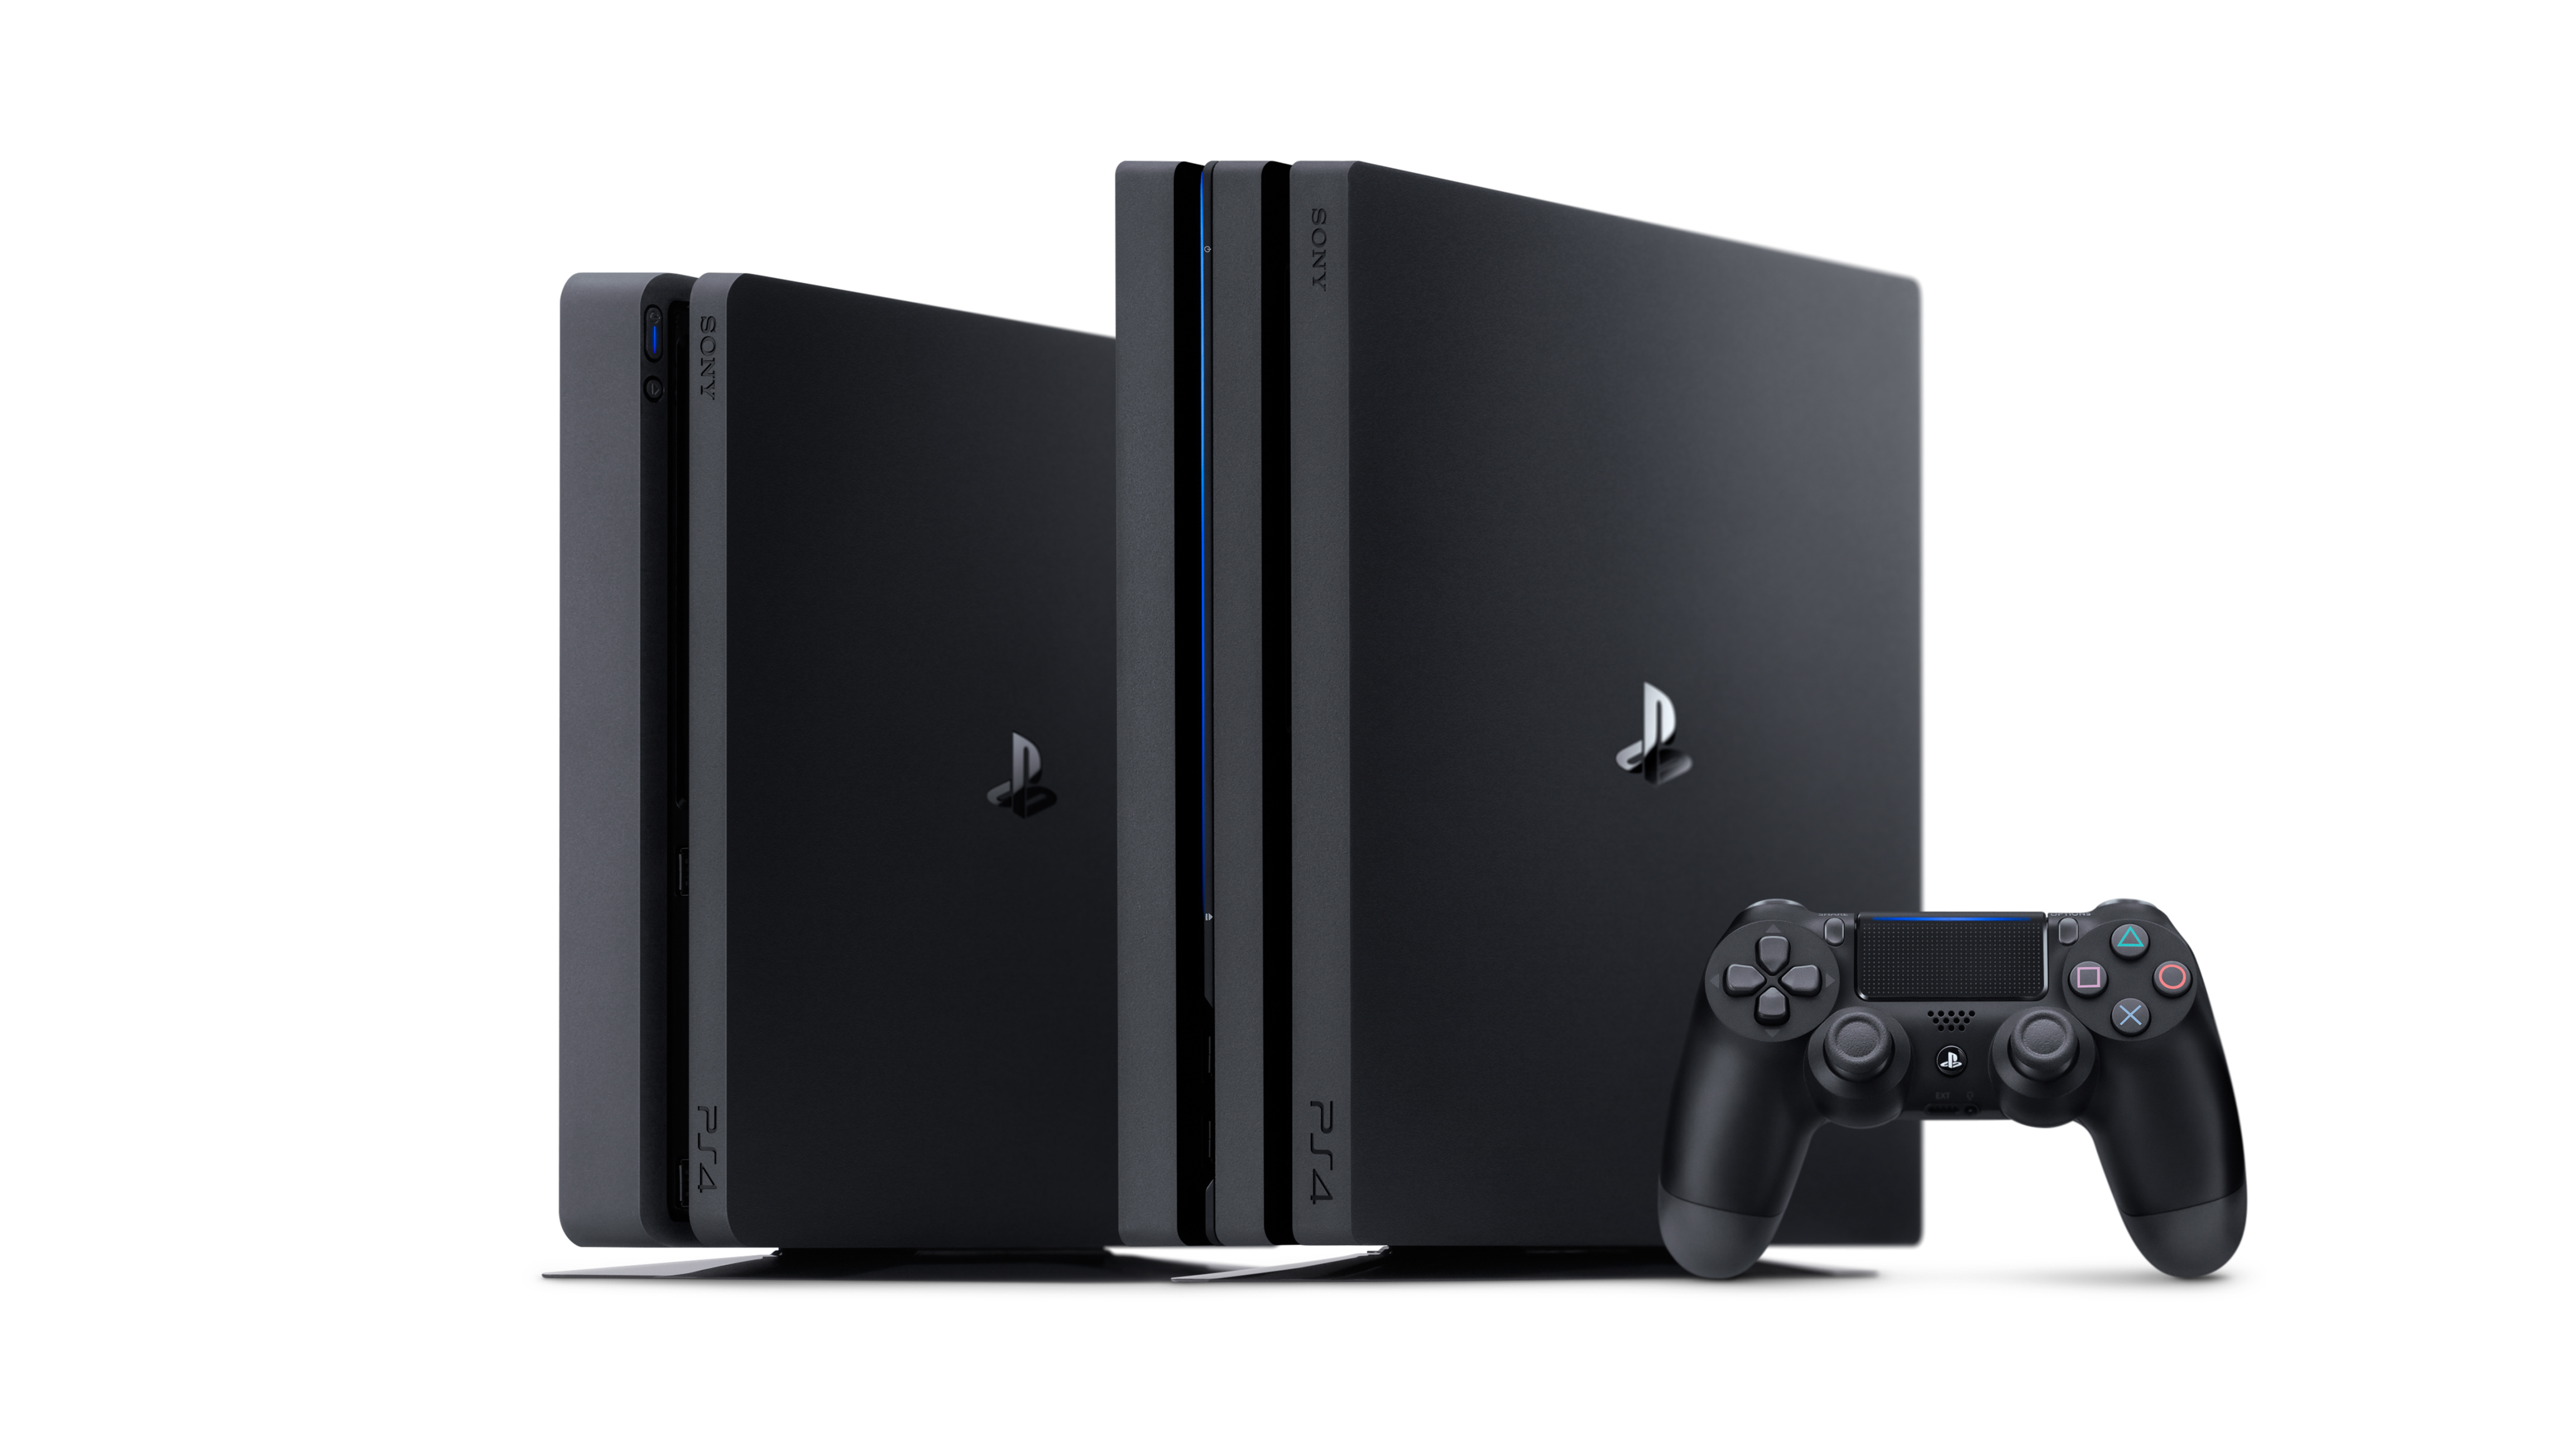 Ps4 Pro Vs Whats The Difference Techradar Sony Playstation 4 500gb Black